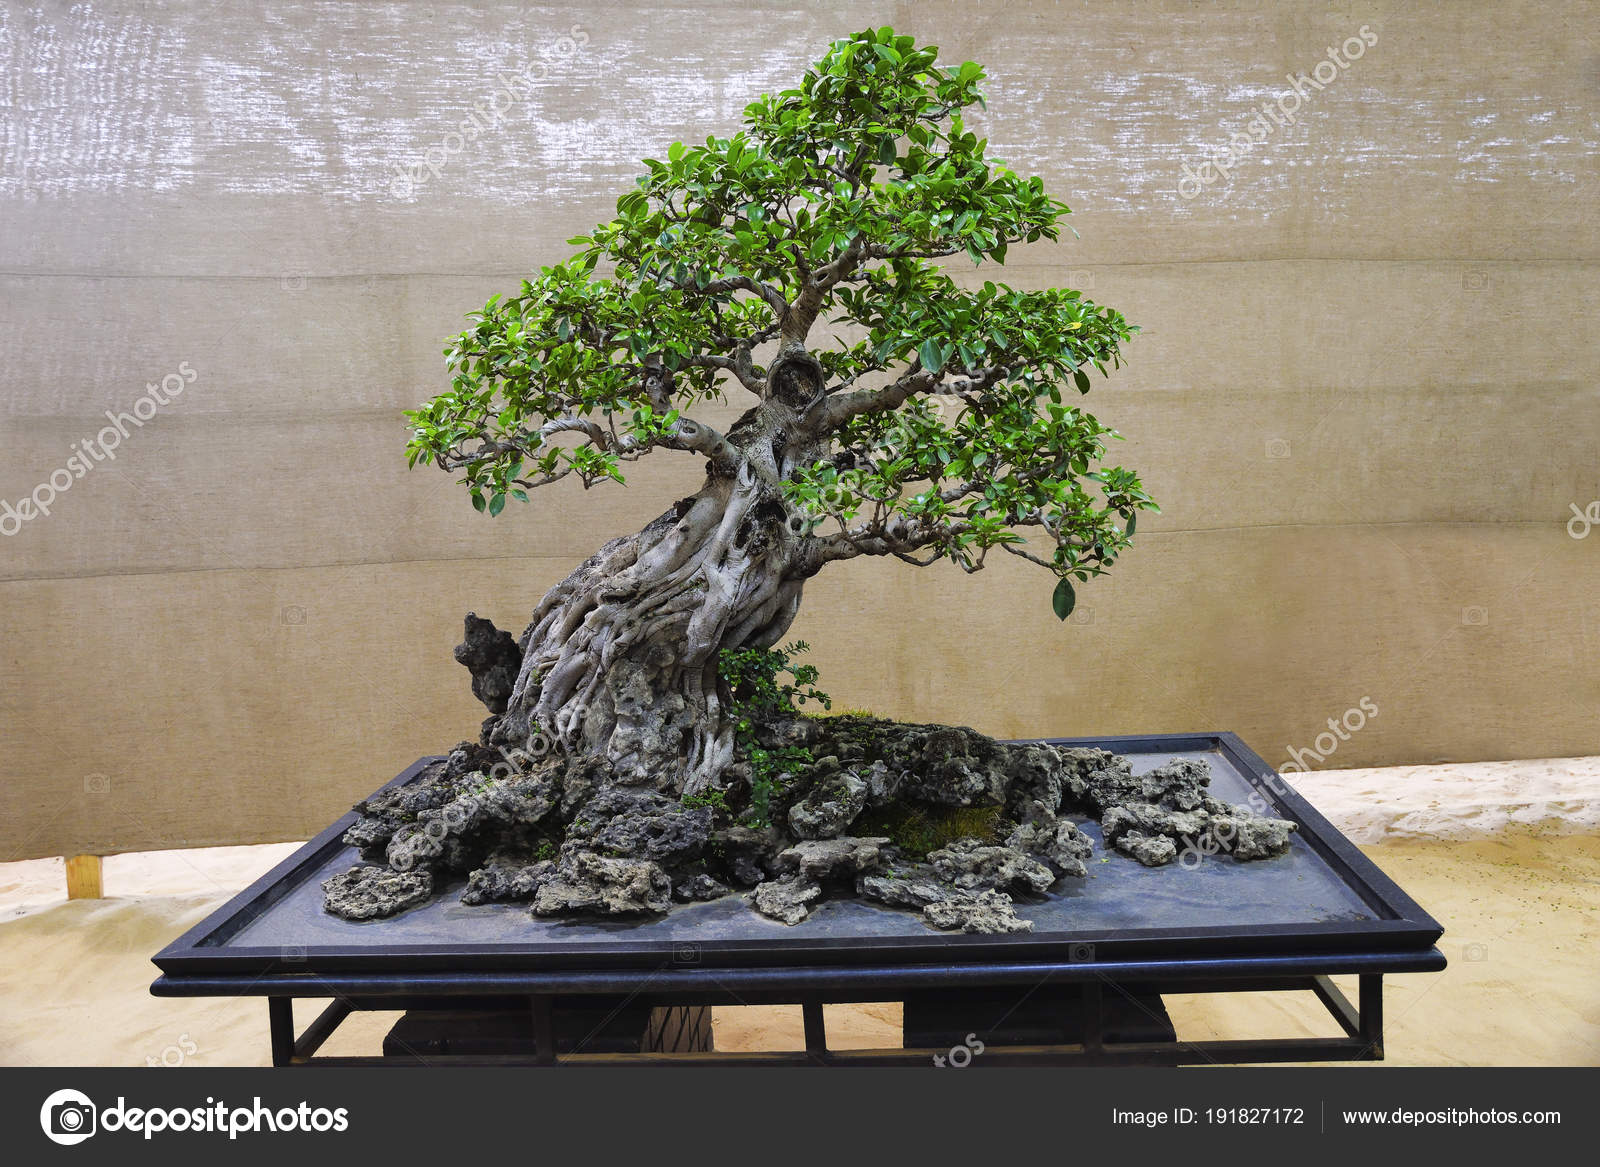 Ficus Retusa Tree Bonsai Exhibition Pune Shivajinagar Pune Maharashtra Stock Photo C Realityimages 191827172